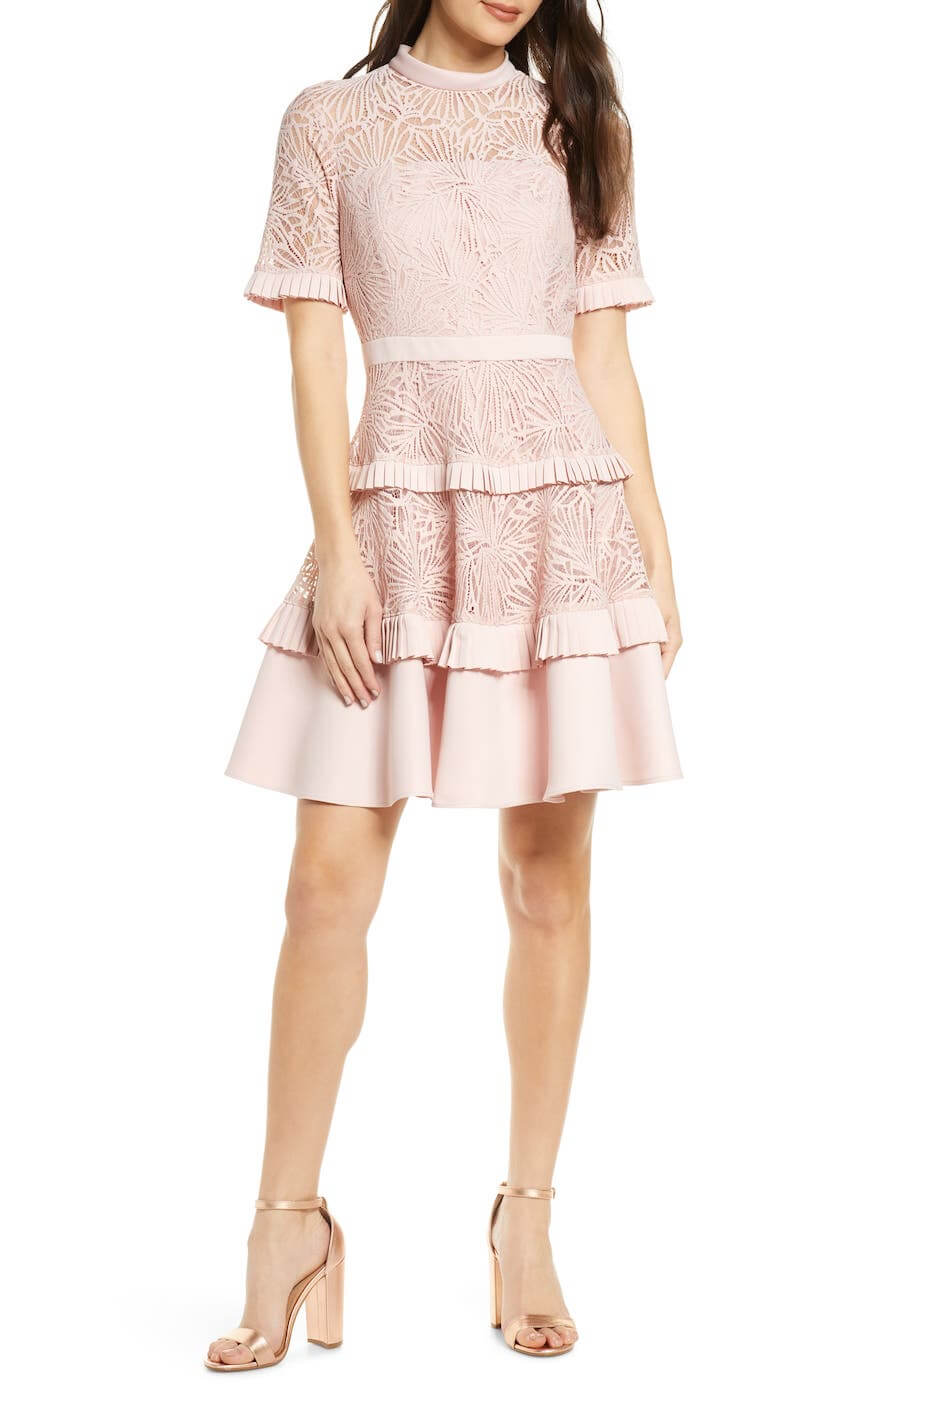 nordstrom-ever-new-021820